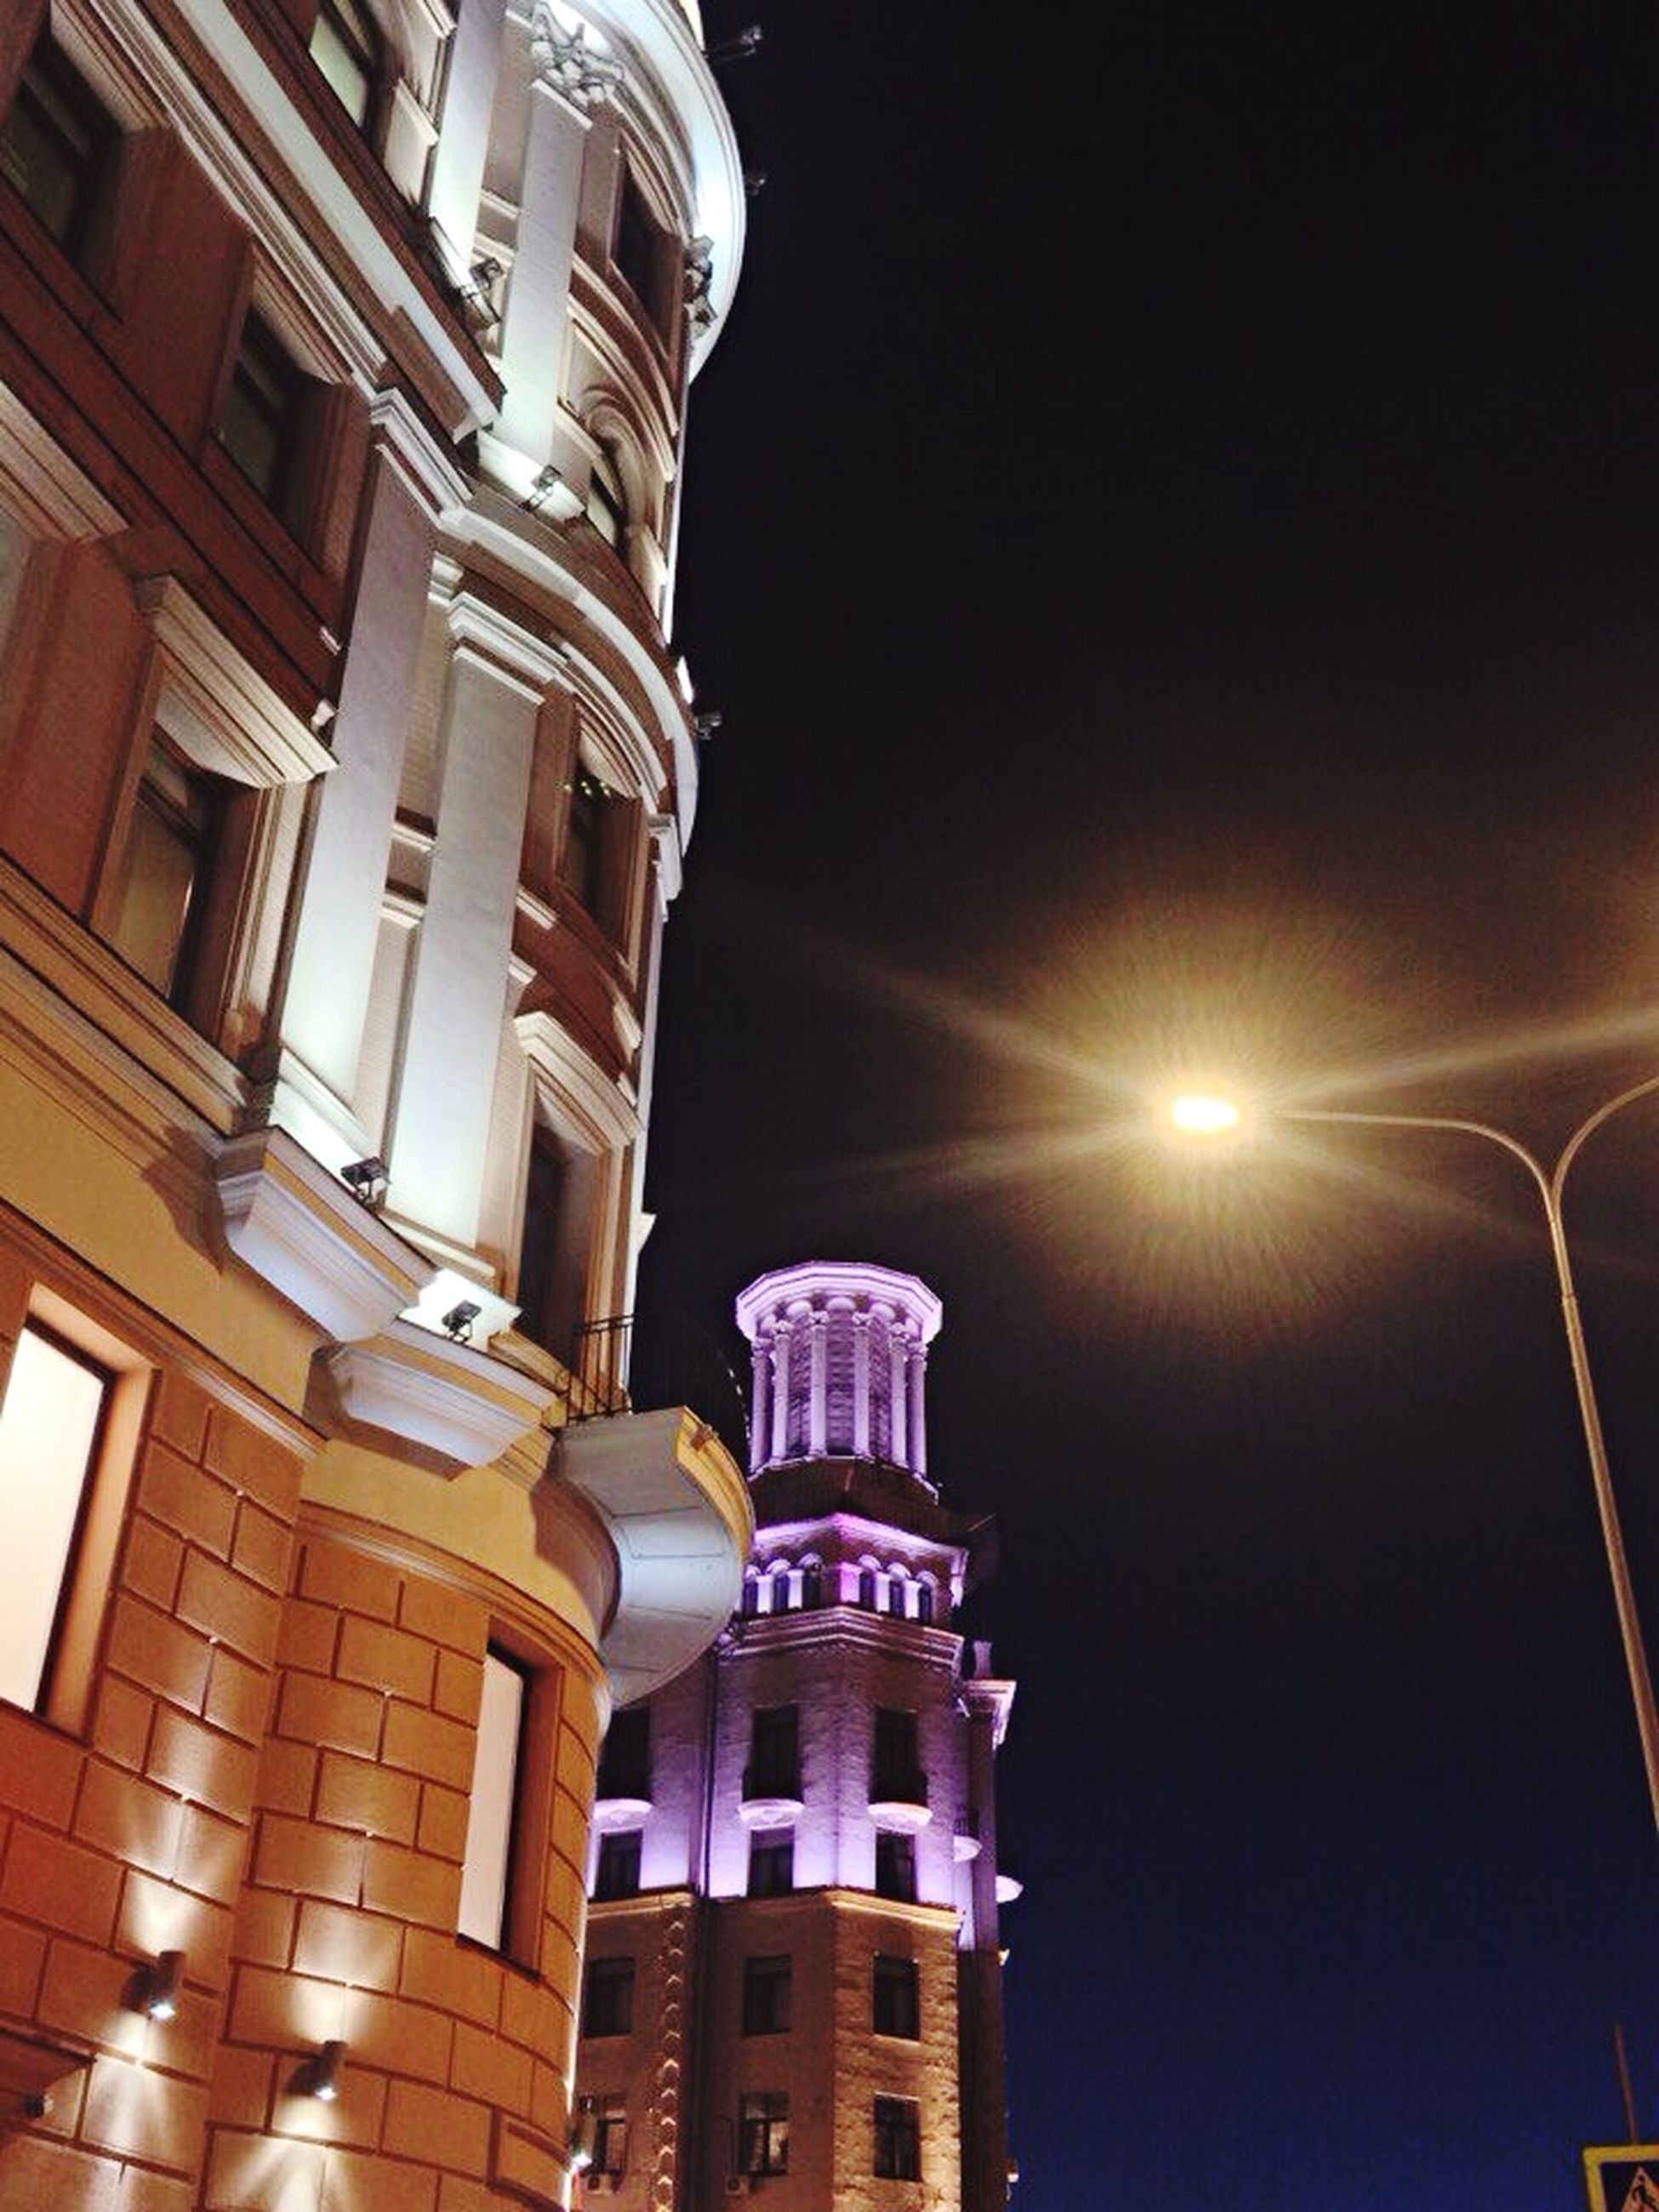 architecture, building exterior, low angle view, built structure, illuminated, night, no people, outdoors, sky, city